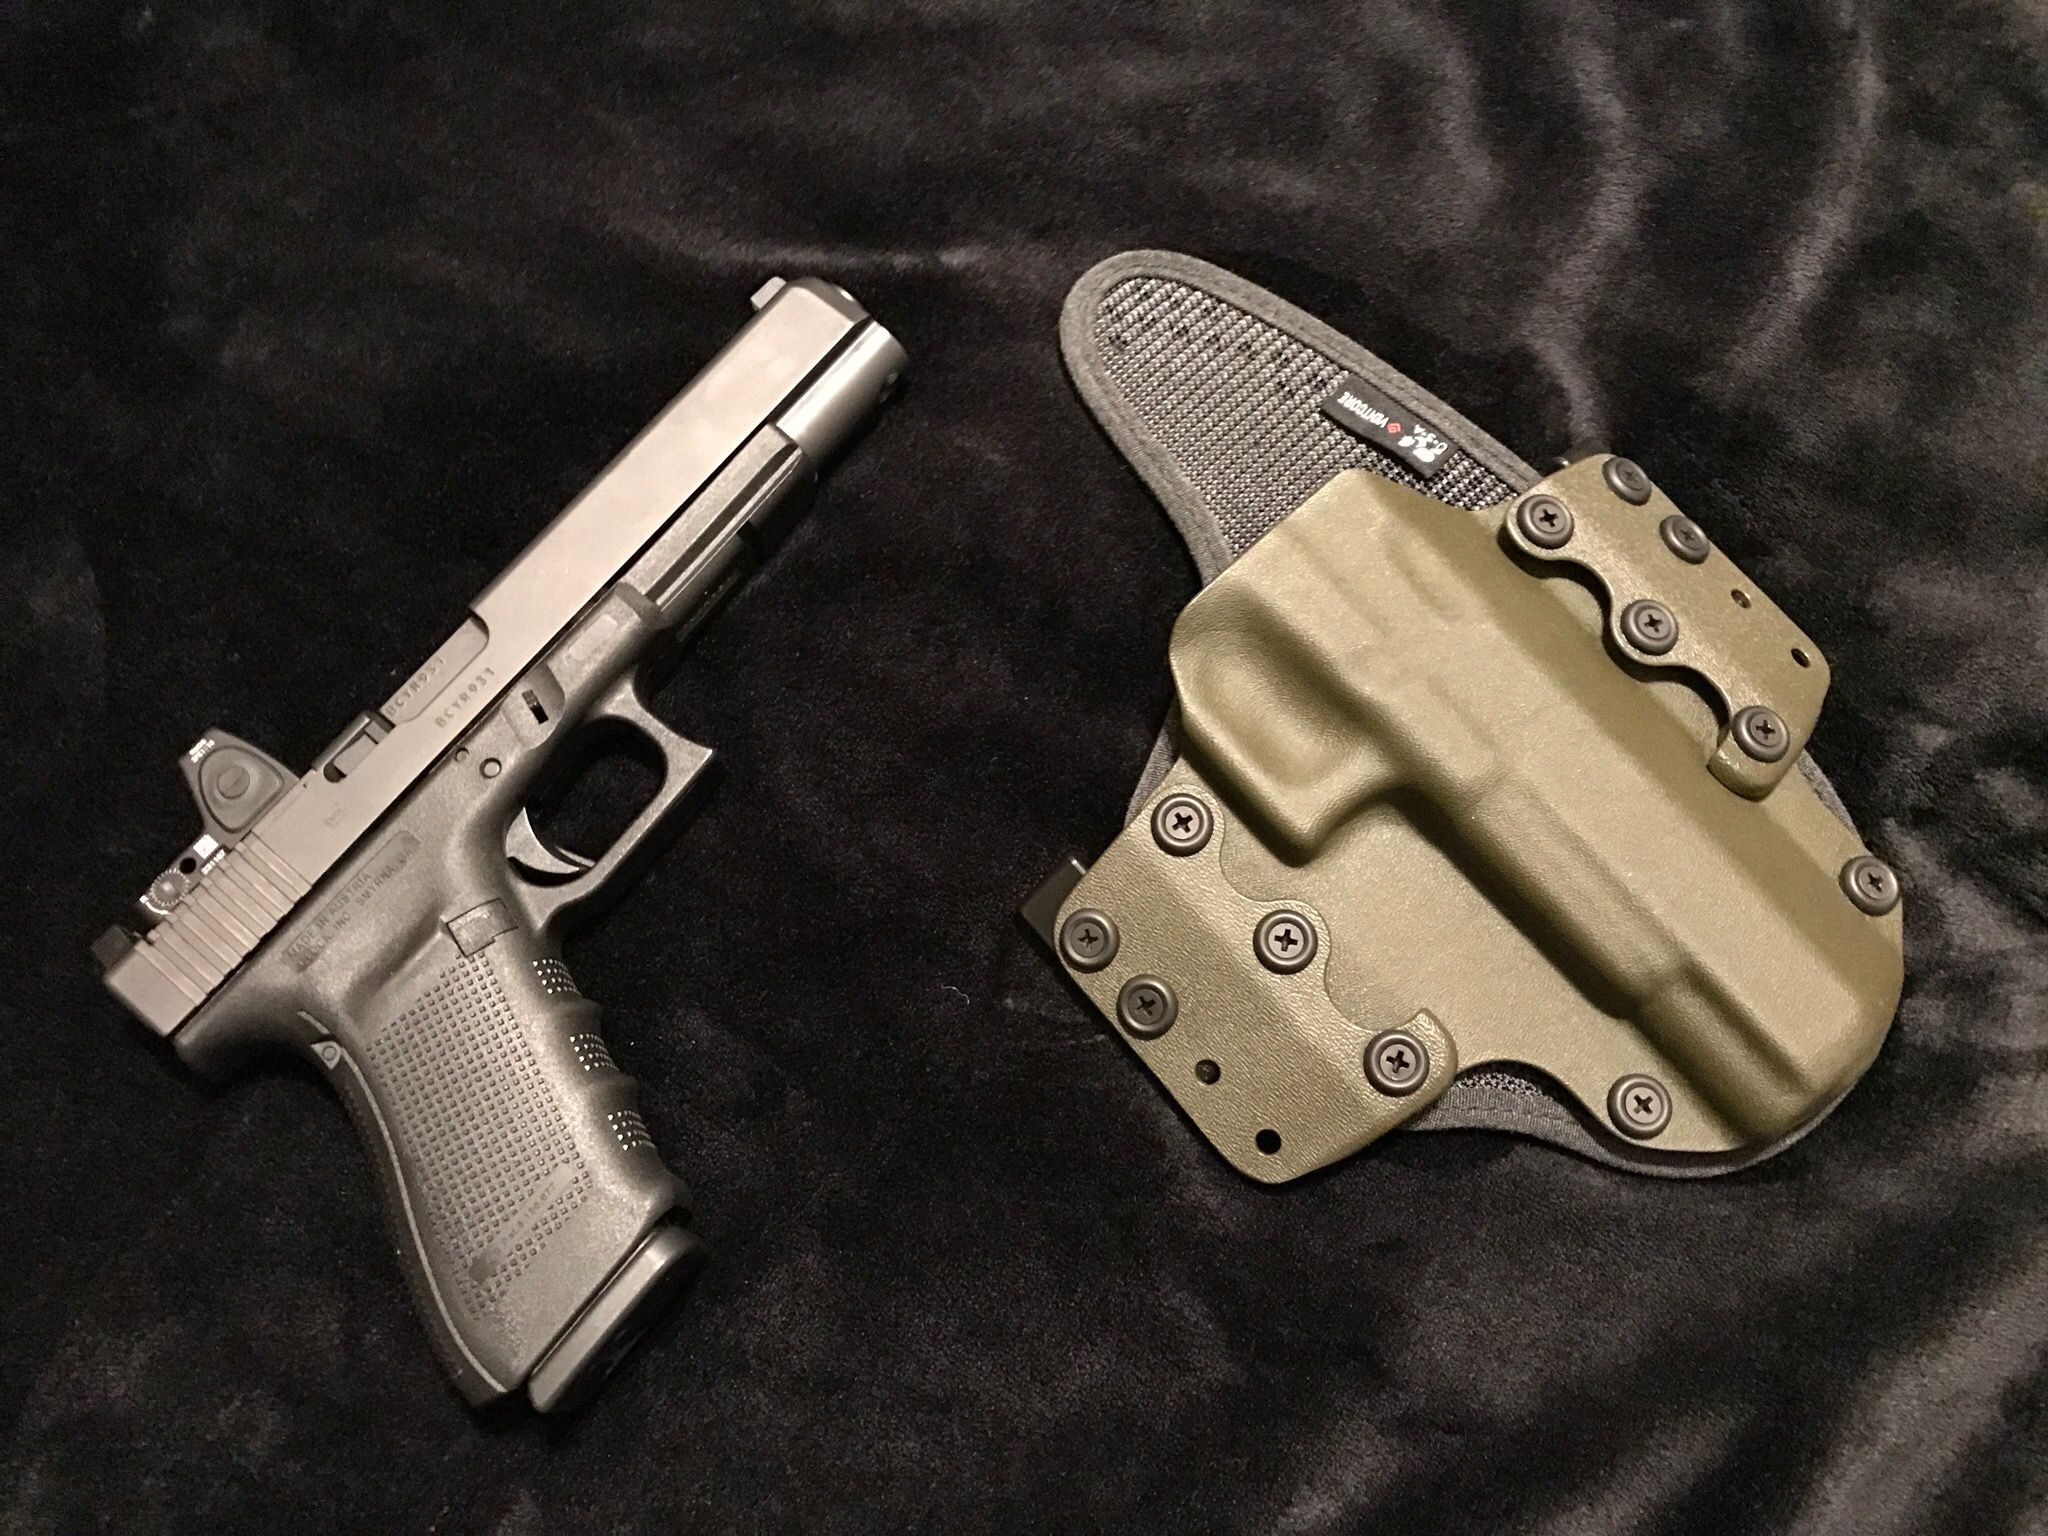 Stealthgear Owb Flex For The Glock G40 Mos This Is An Awesome